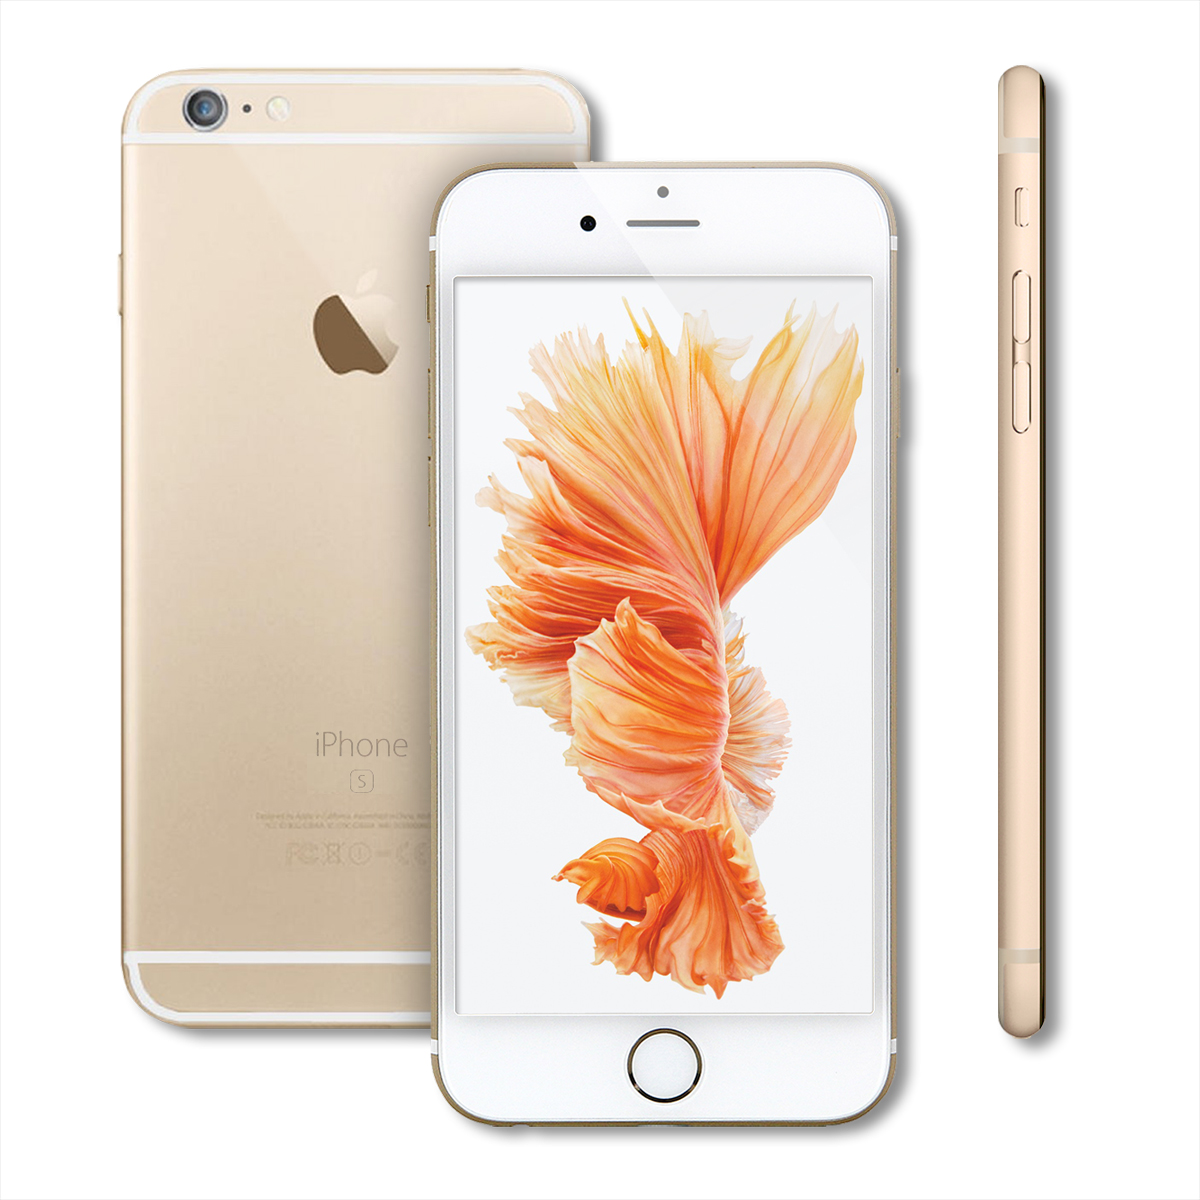 Apple iPhone 6S Smartphone 16GB Unlocked Cell Phone a1688 Silver Rose ...